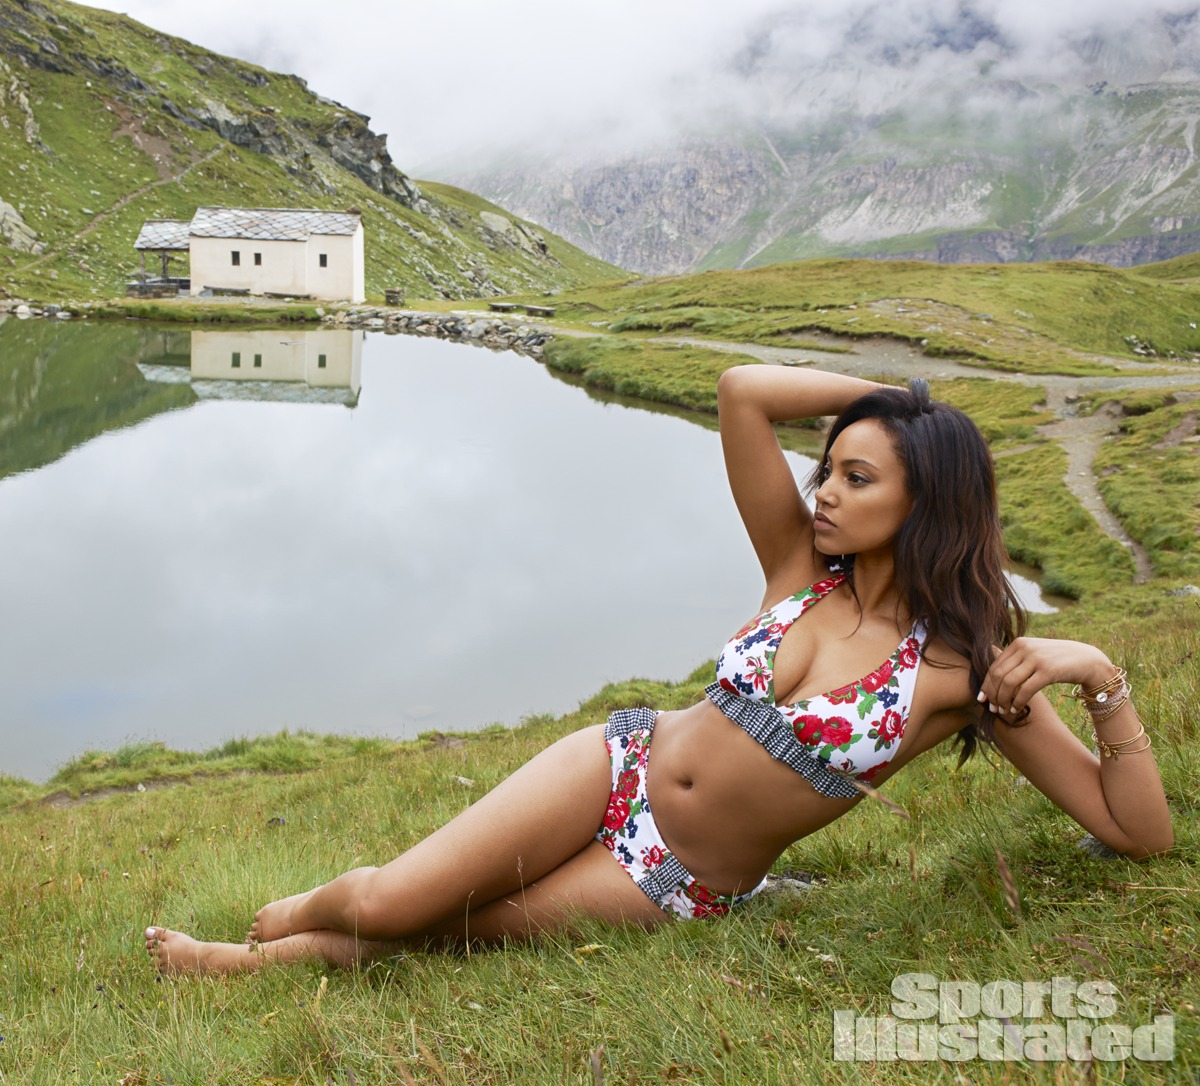 Ariel Meredith was photographed by Yu Tsai in Switzerland. Swimsuit by Pret-A-Surf.